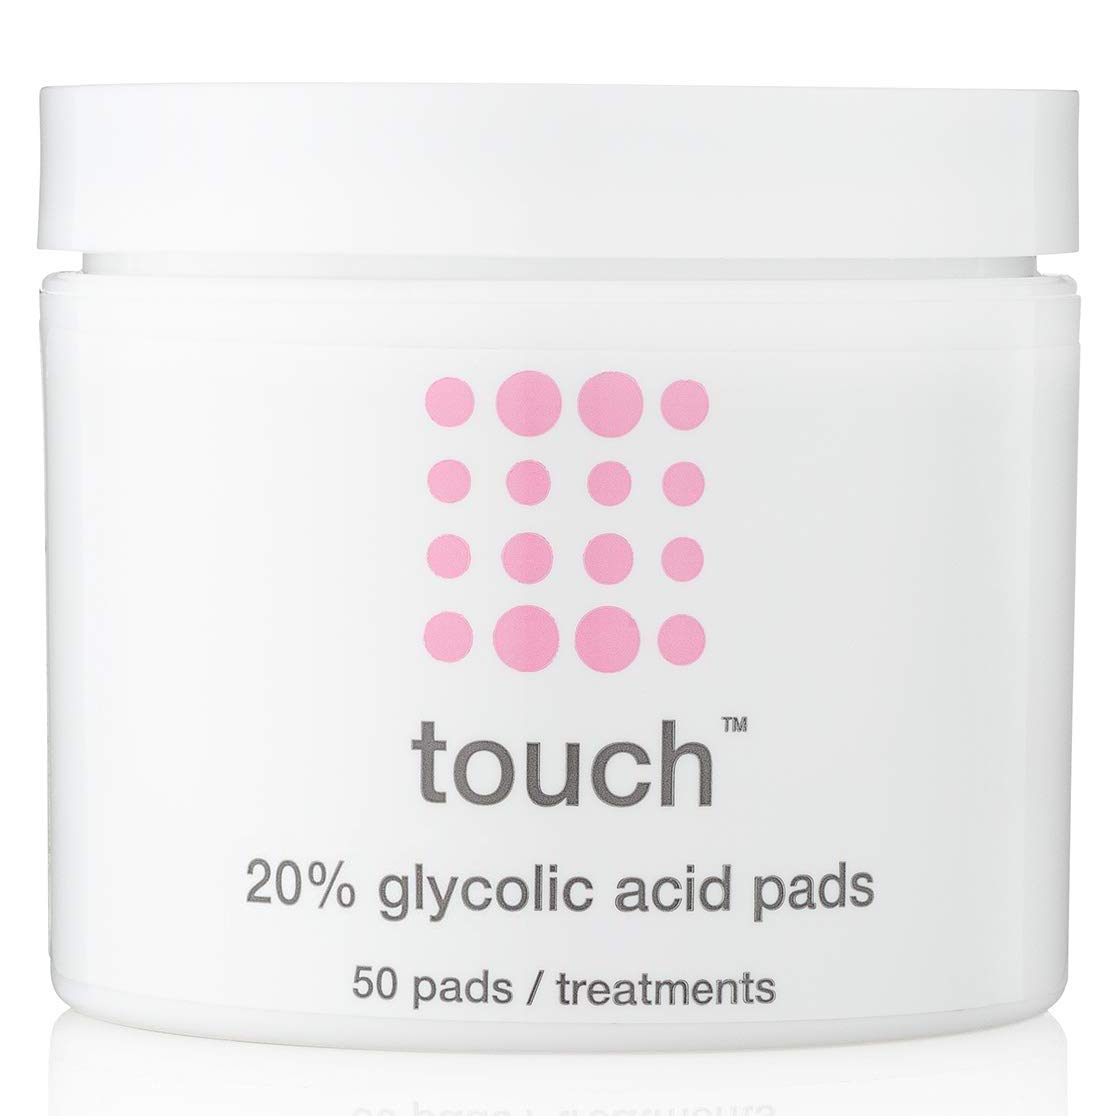 20% Glycolic Acid Pads Exfoliating And Resurfacing AHA Peel Face Wipes - Great for Anti-Aging, Dullness, Pores, Acne Scars, Fine Wrinkles, Uneven Skin Tone & Texture, Hyperpigmentation, 50 Count